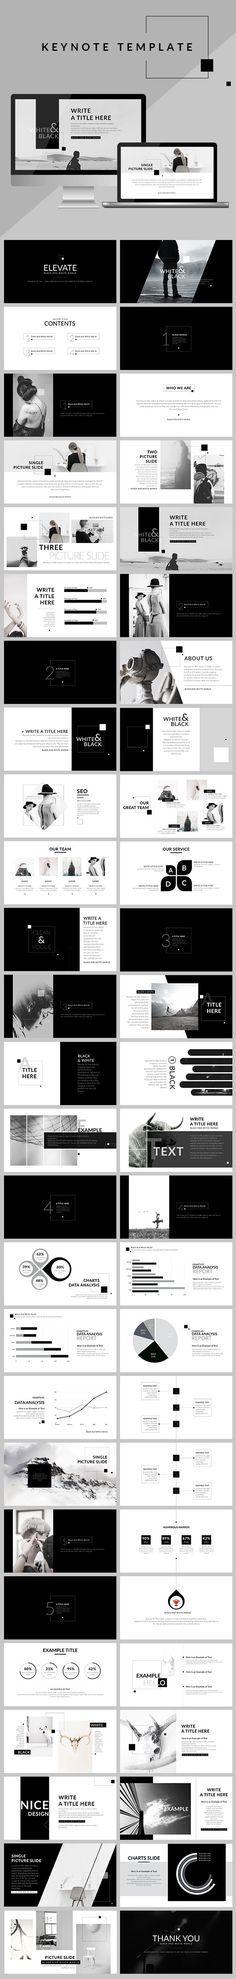 Black & White - Clean Keynote Template